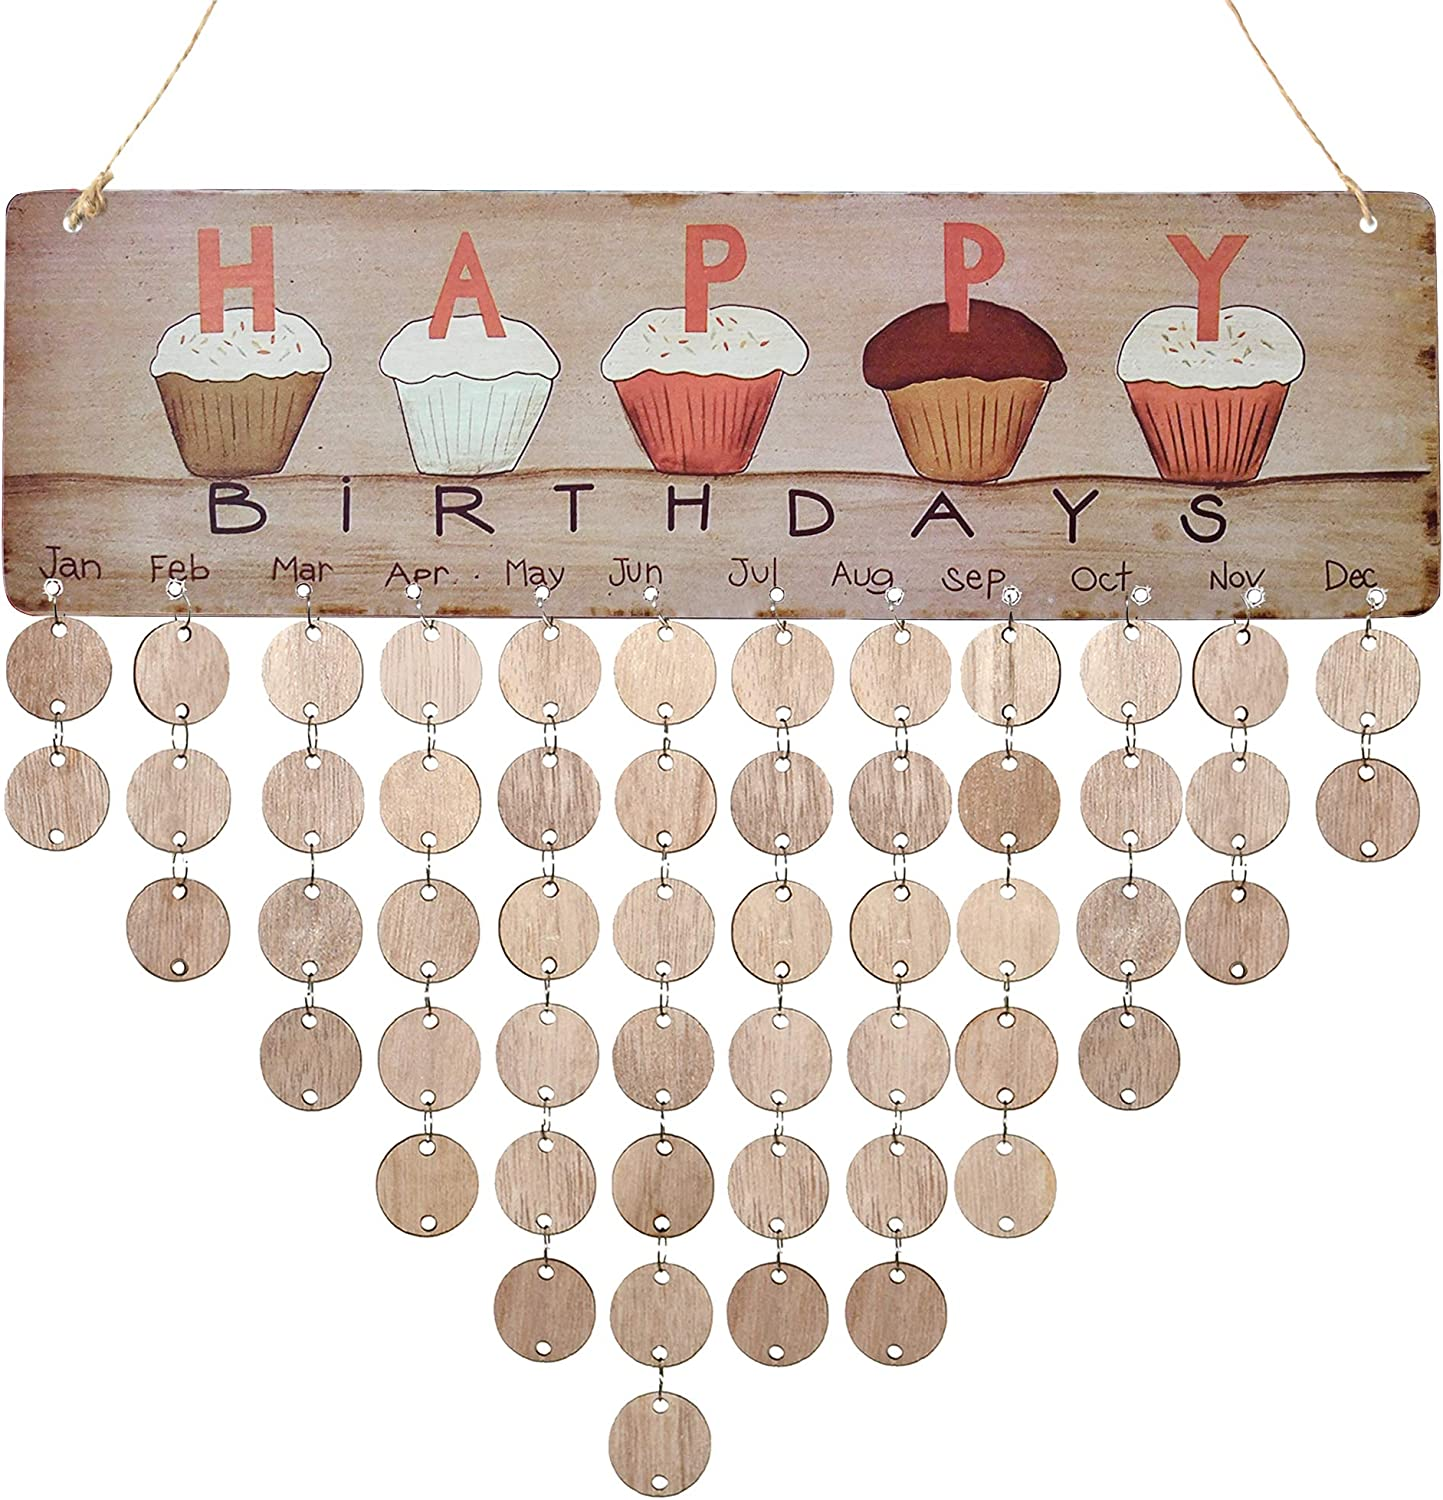 Cupcake Birthday Calendar Max 53% OFF Wall Excellent Pla Board Hanging Wooden